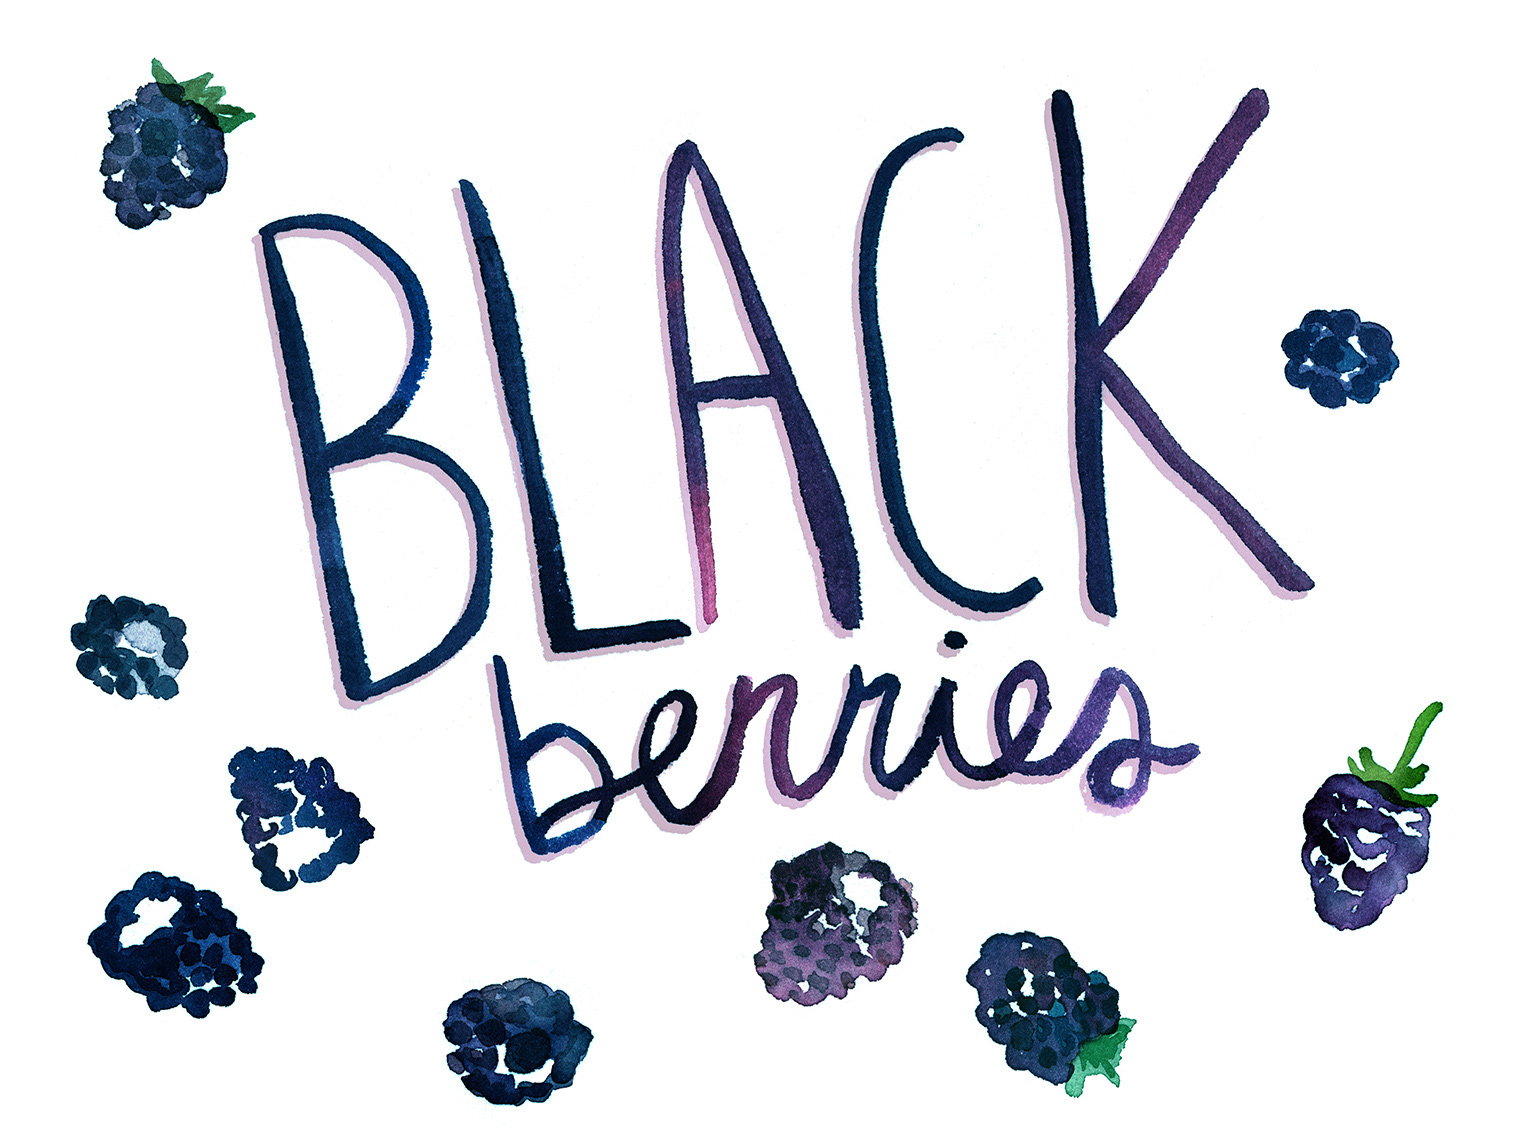 Blackberries_watercolor-illustration_food-network